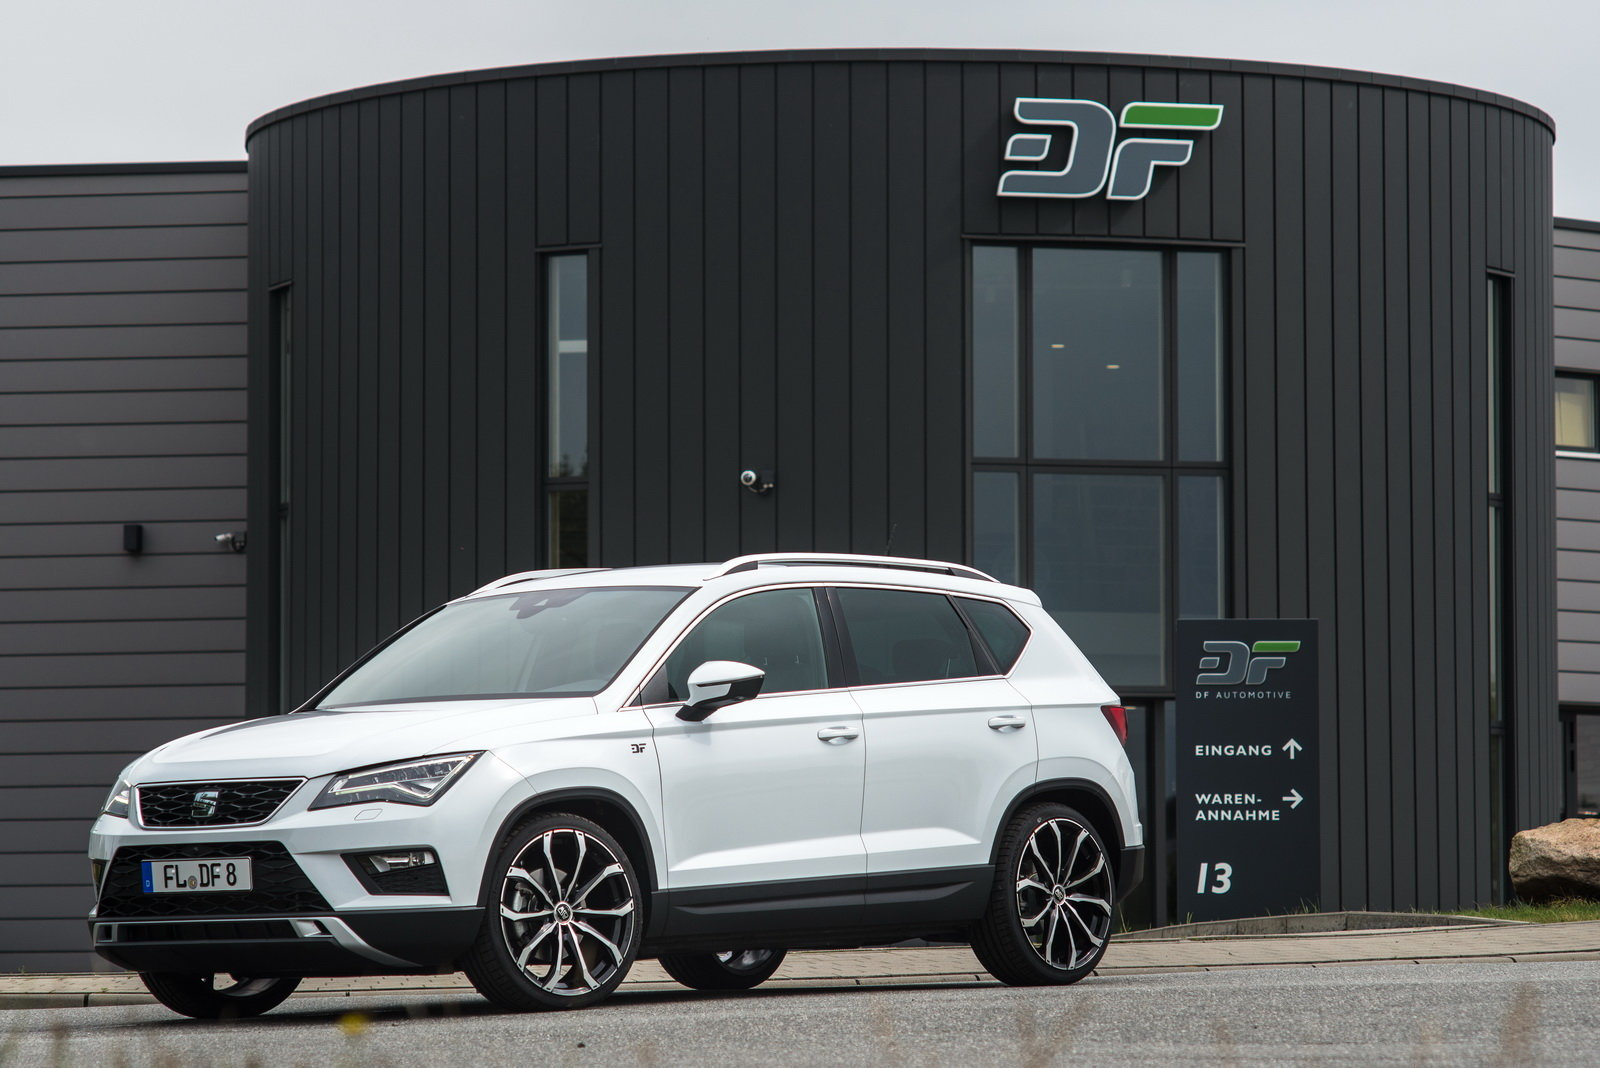 Seat Ateca DF Automotive tuning